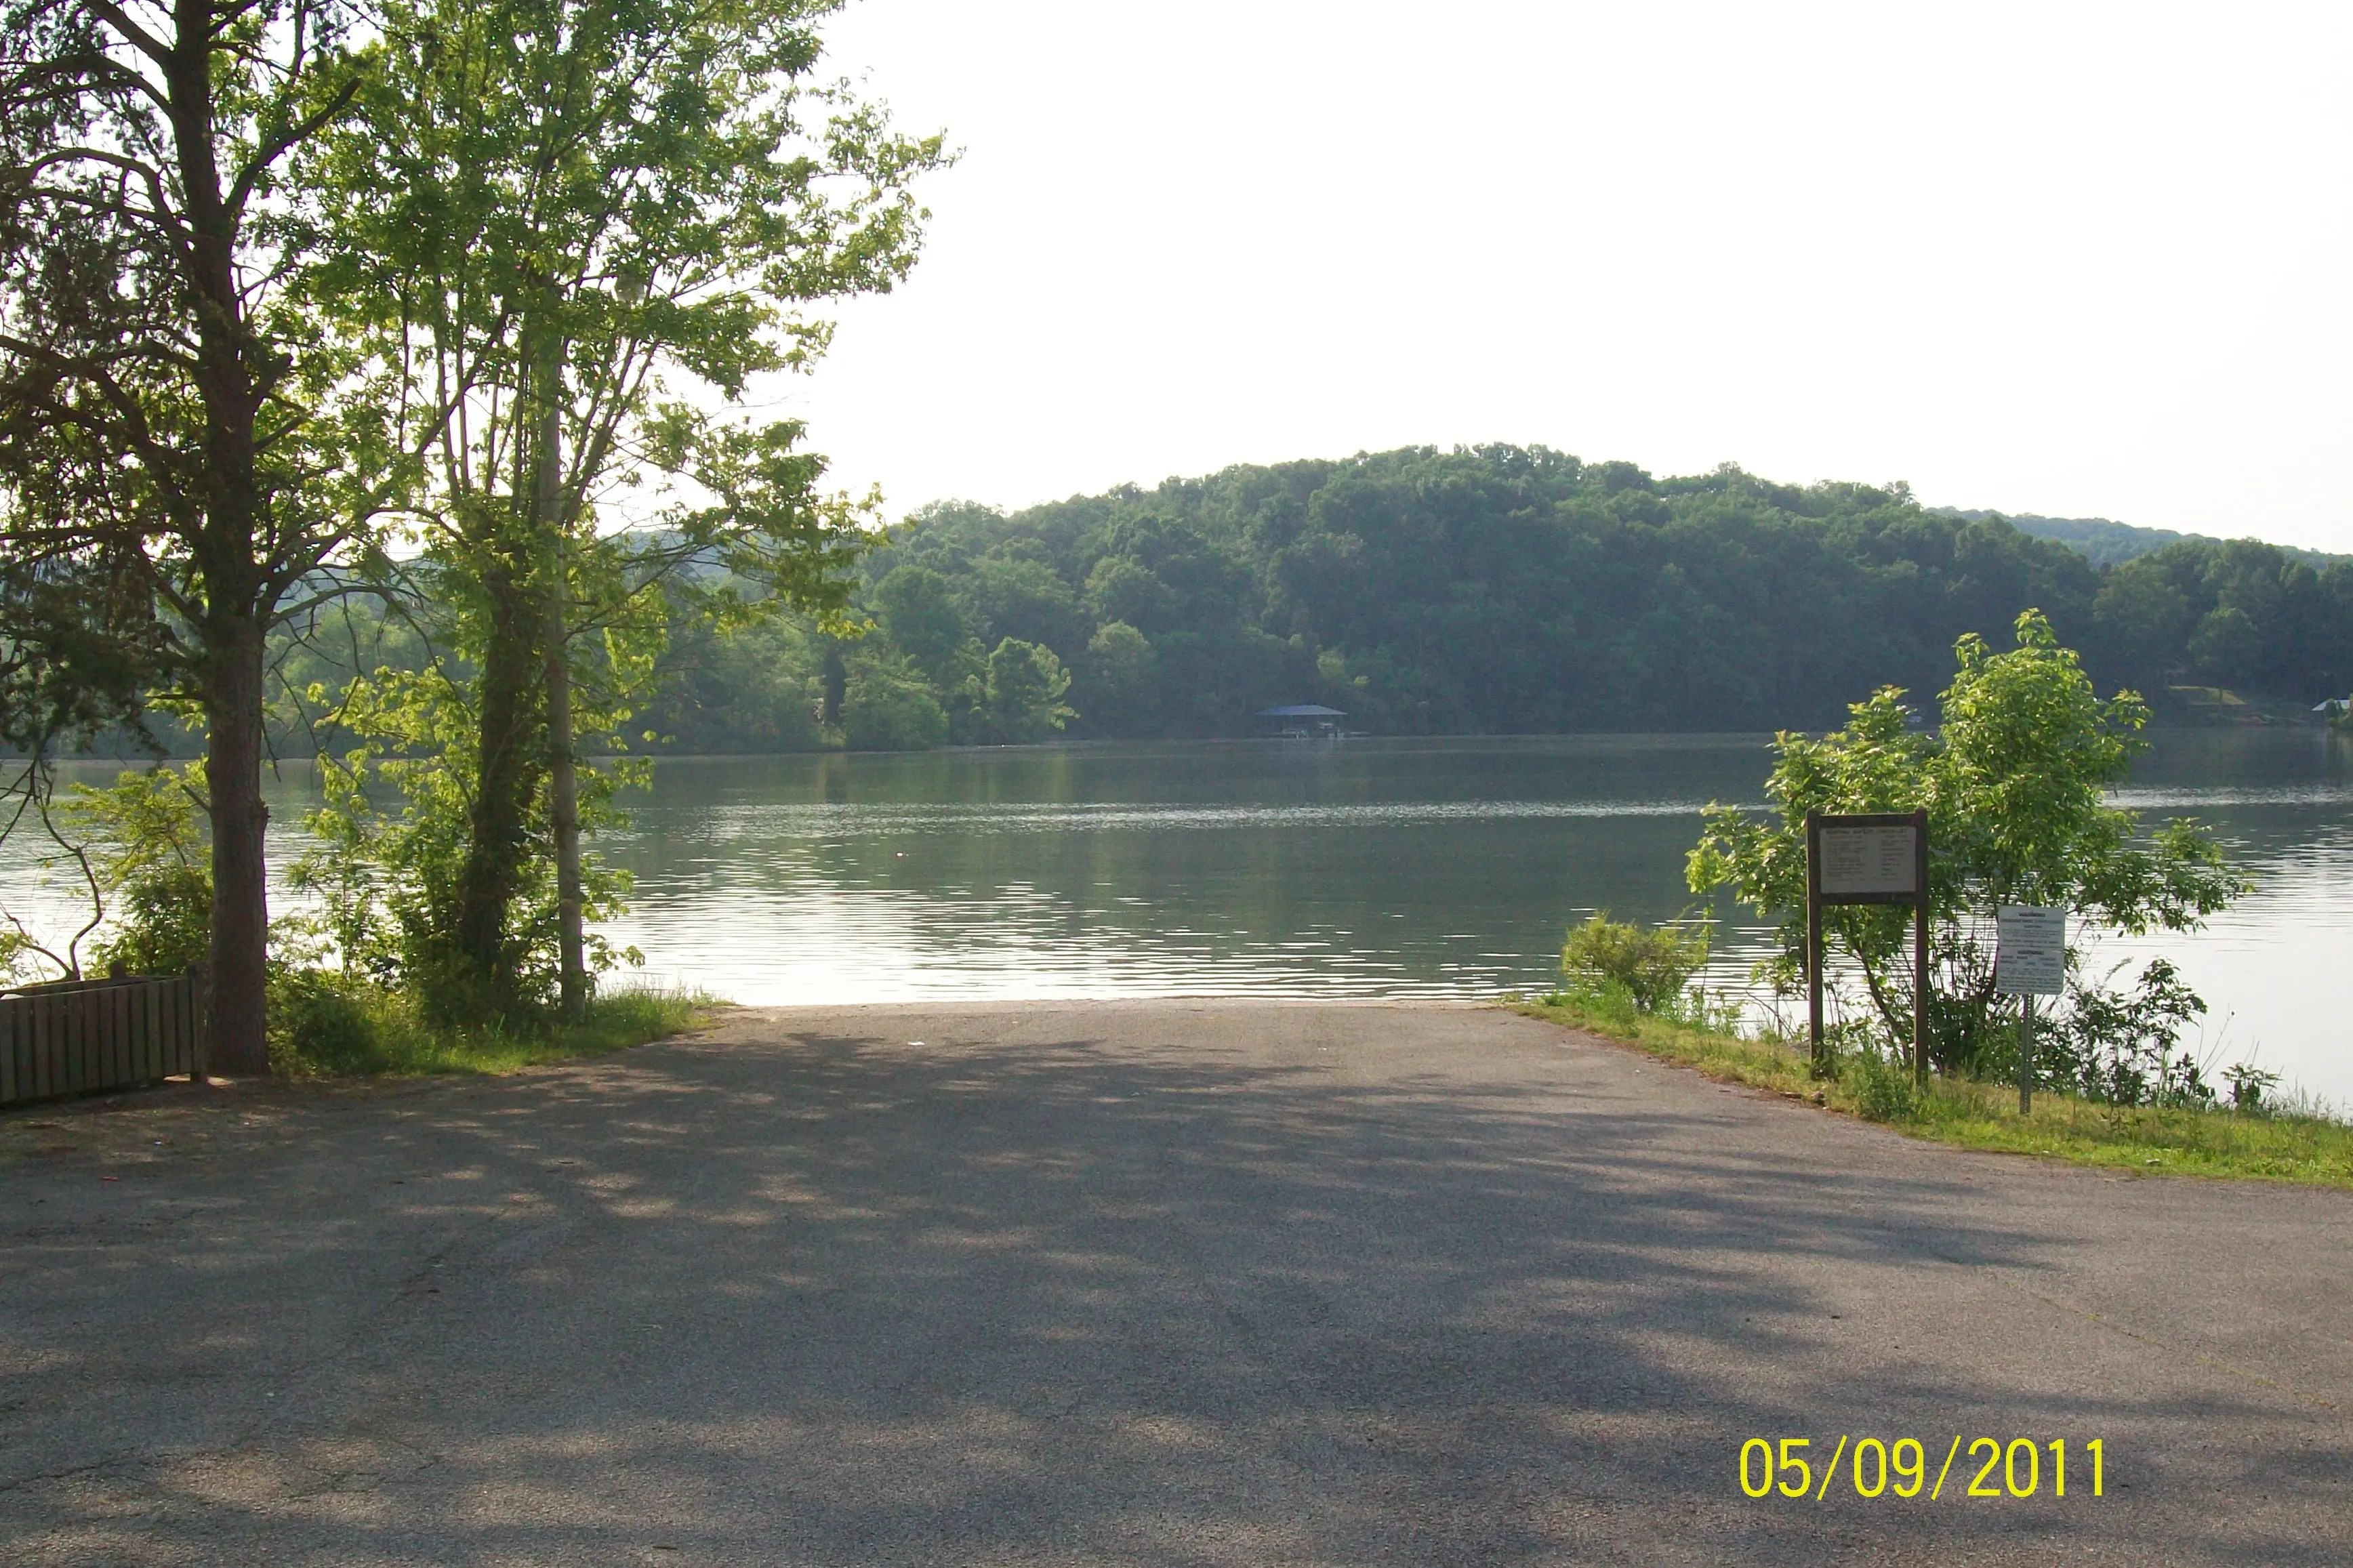 Roane County Parks - Riley Creek Boat Ramp